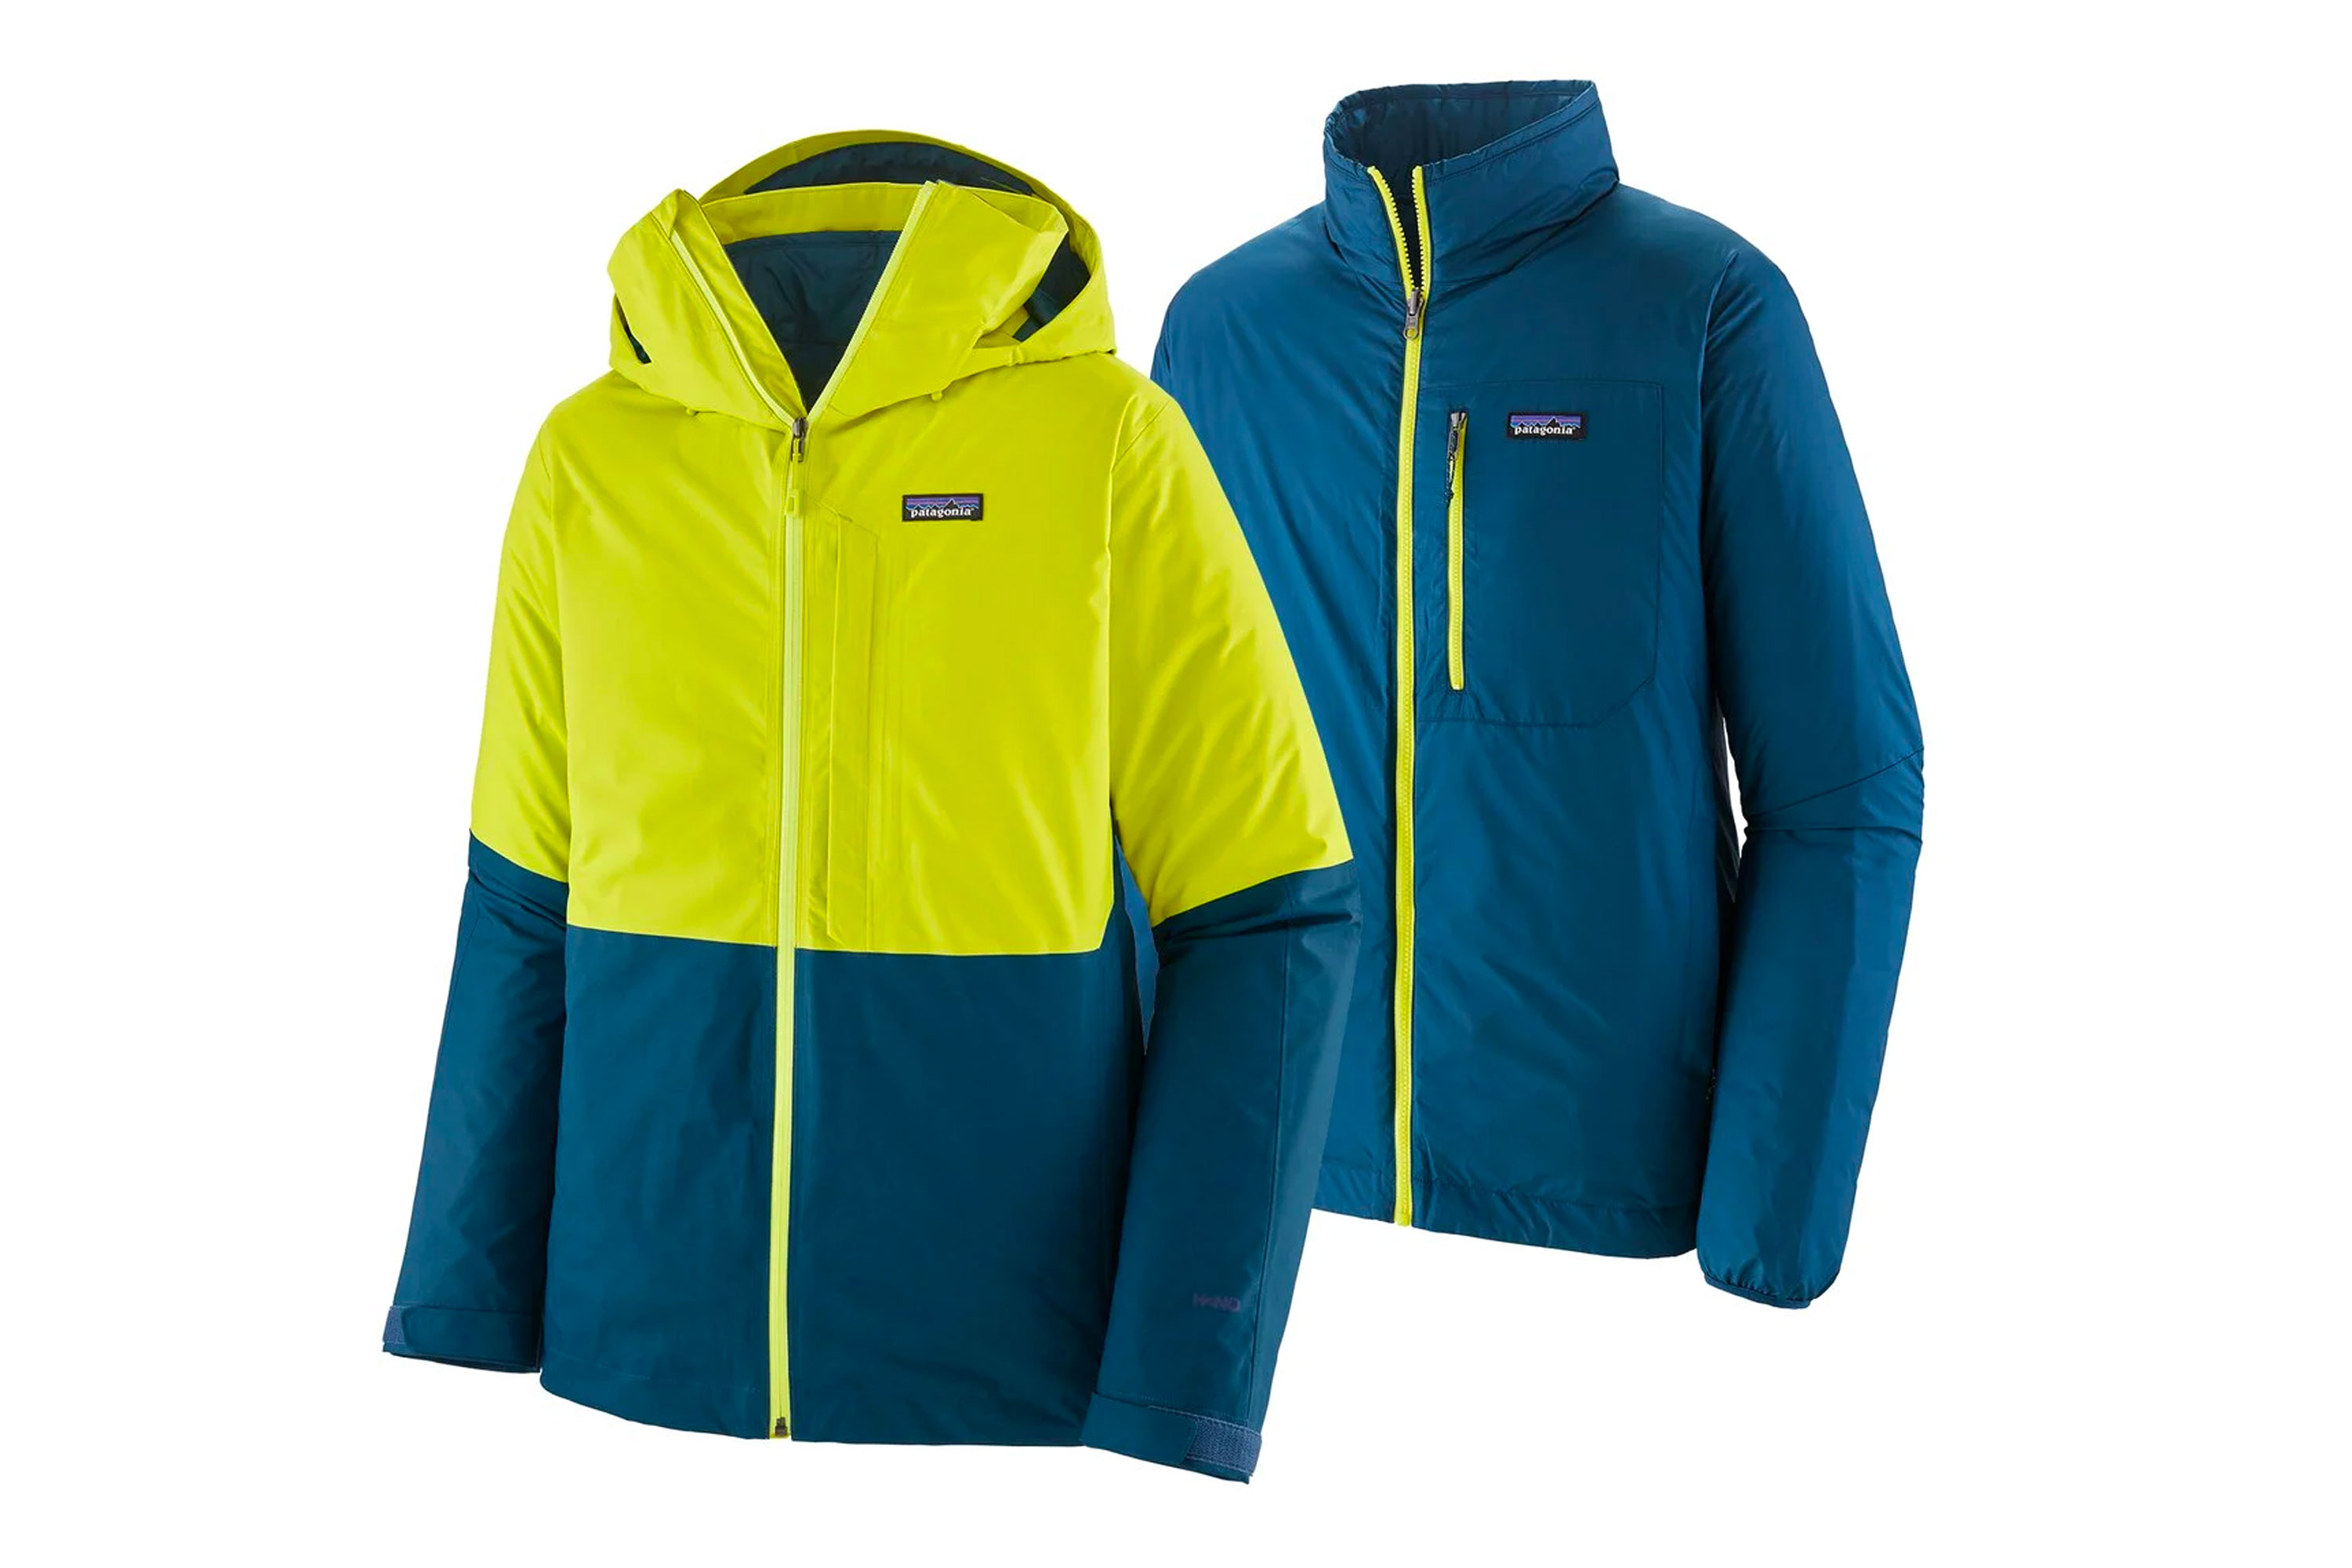 mens ski jacket: patagonia 3-in-1